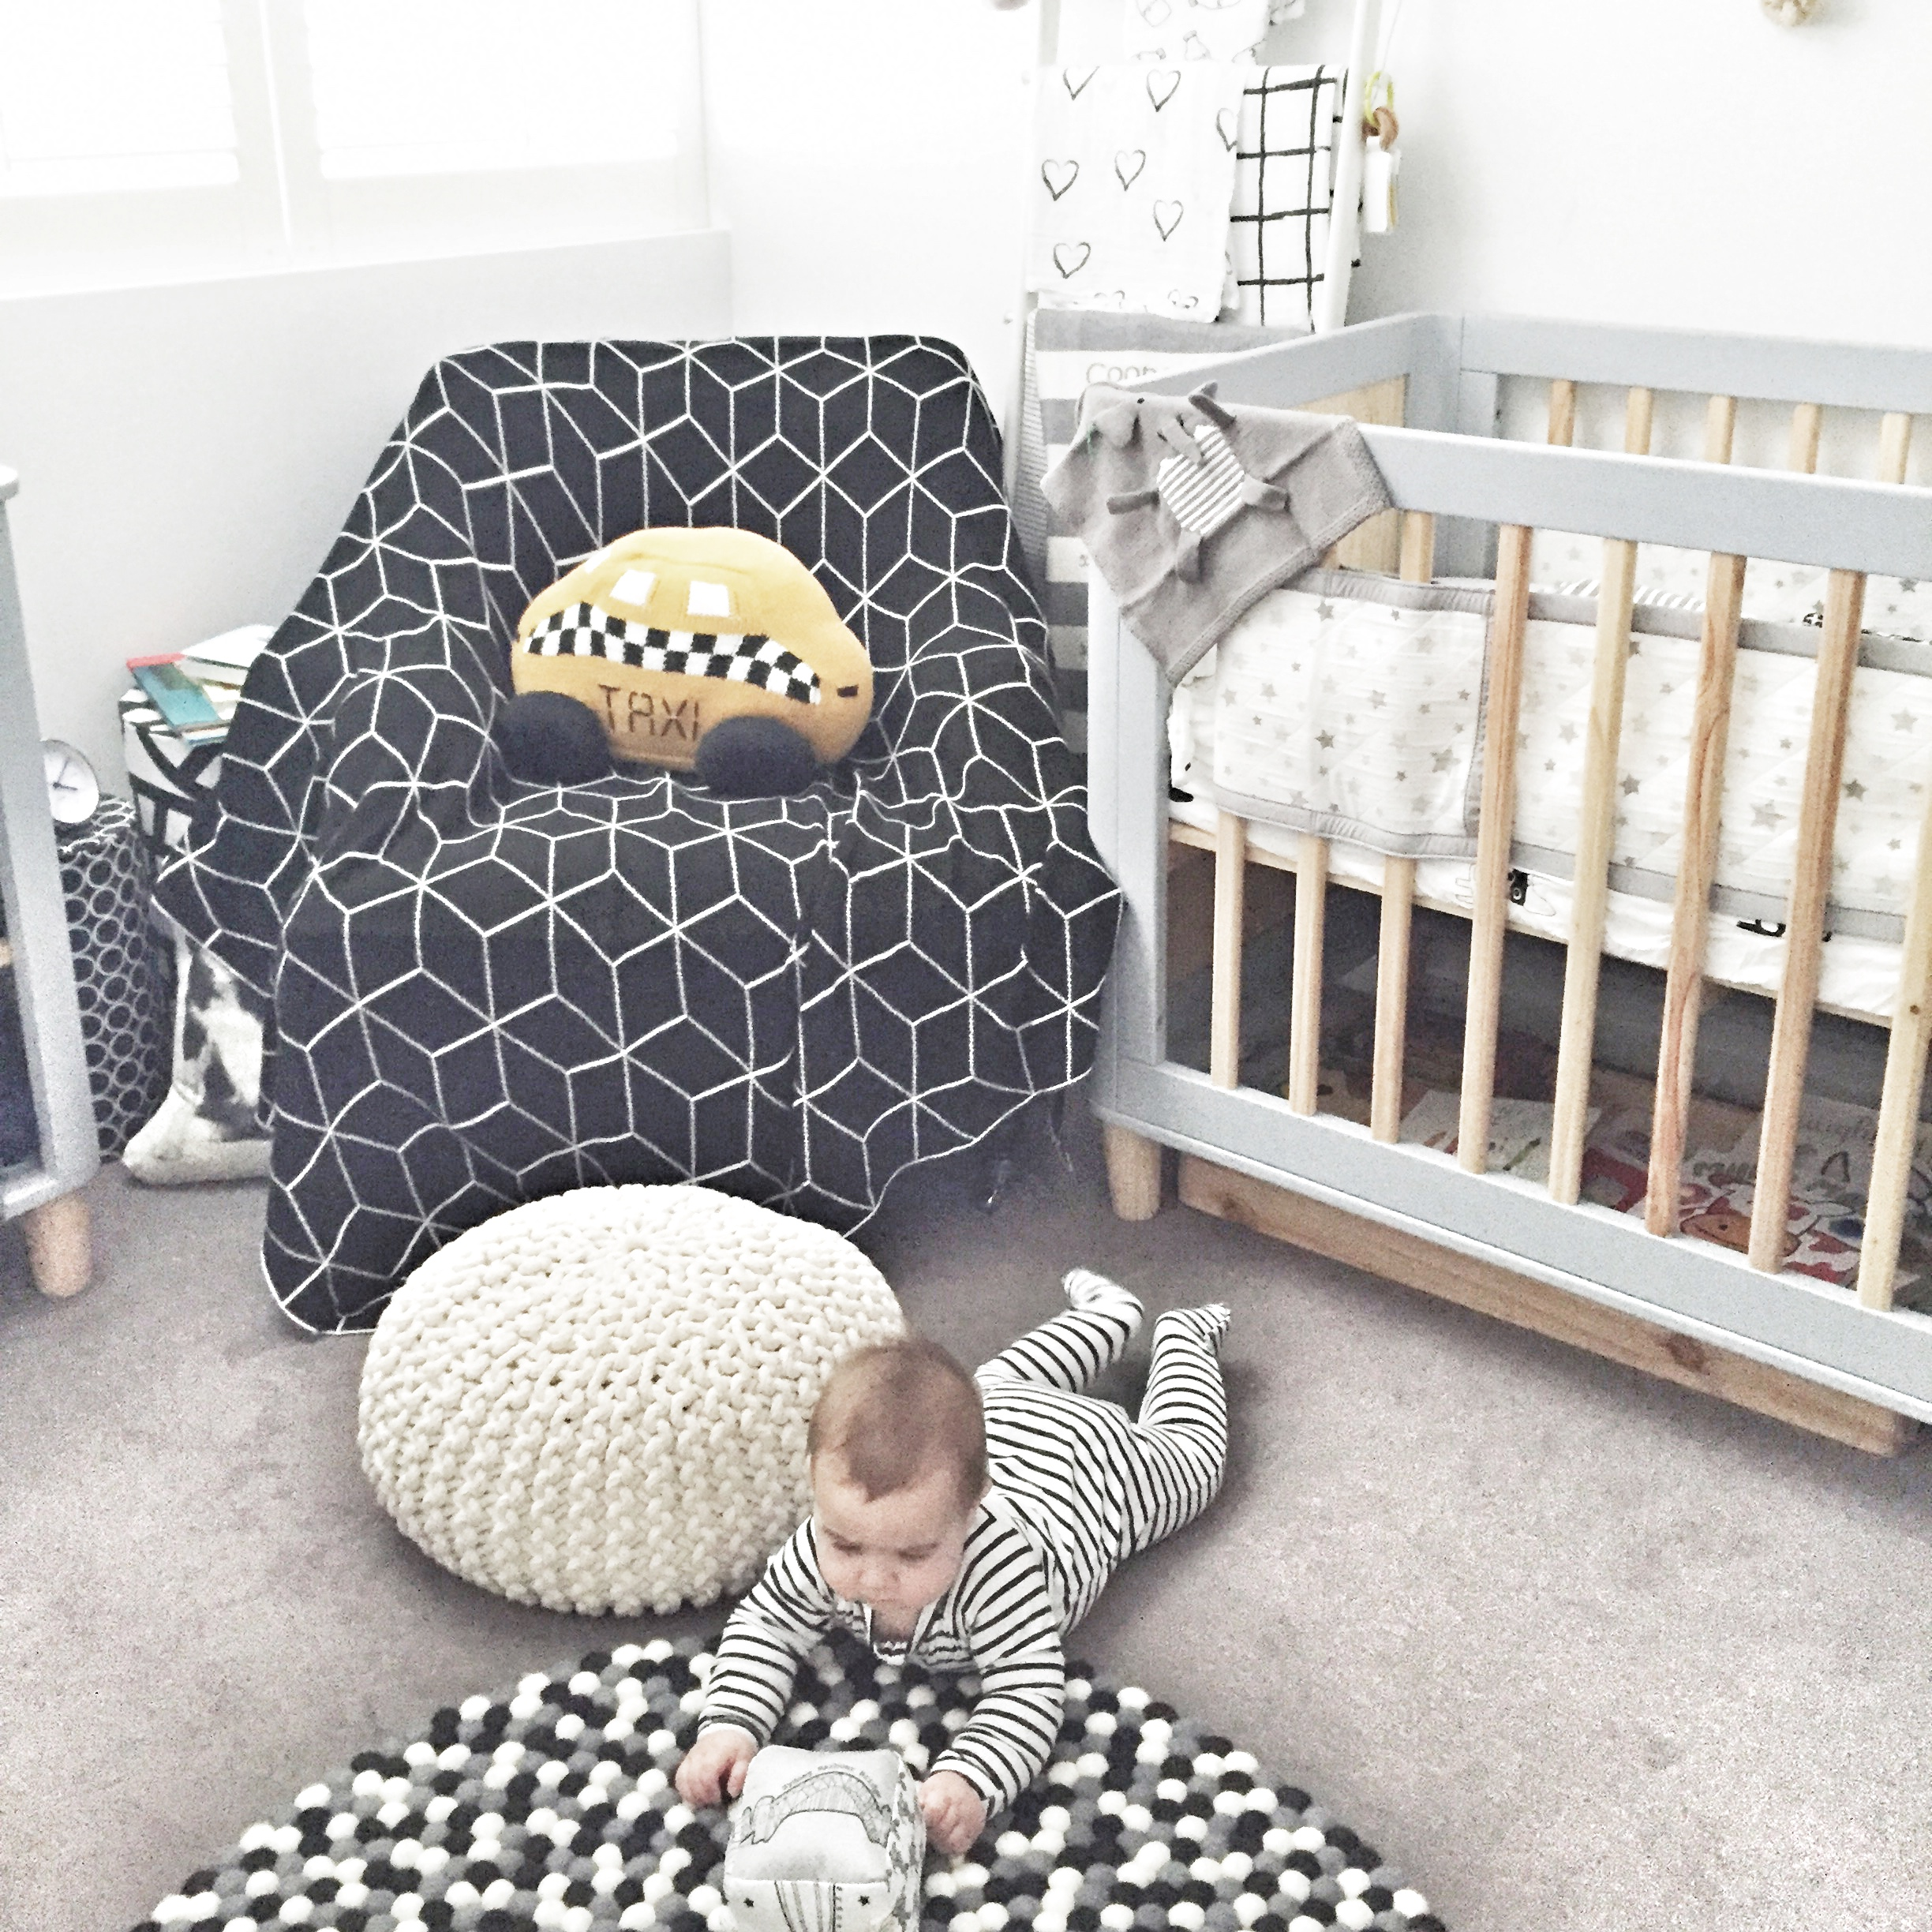 Top 5 tips to create the NURSERY of your dreams!